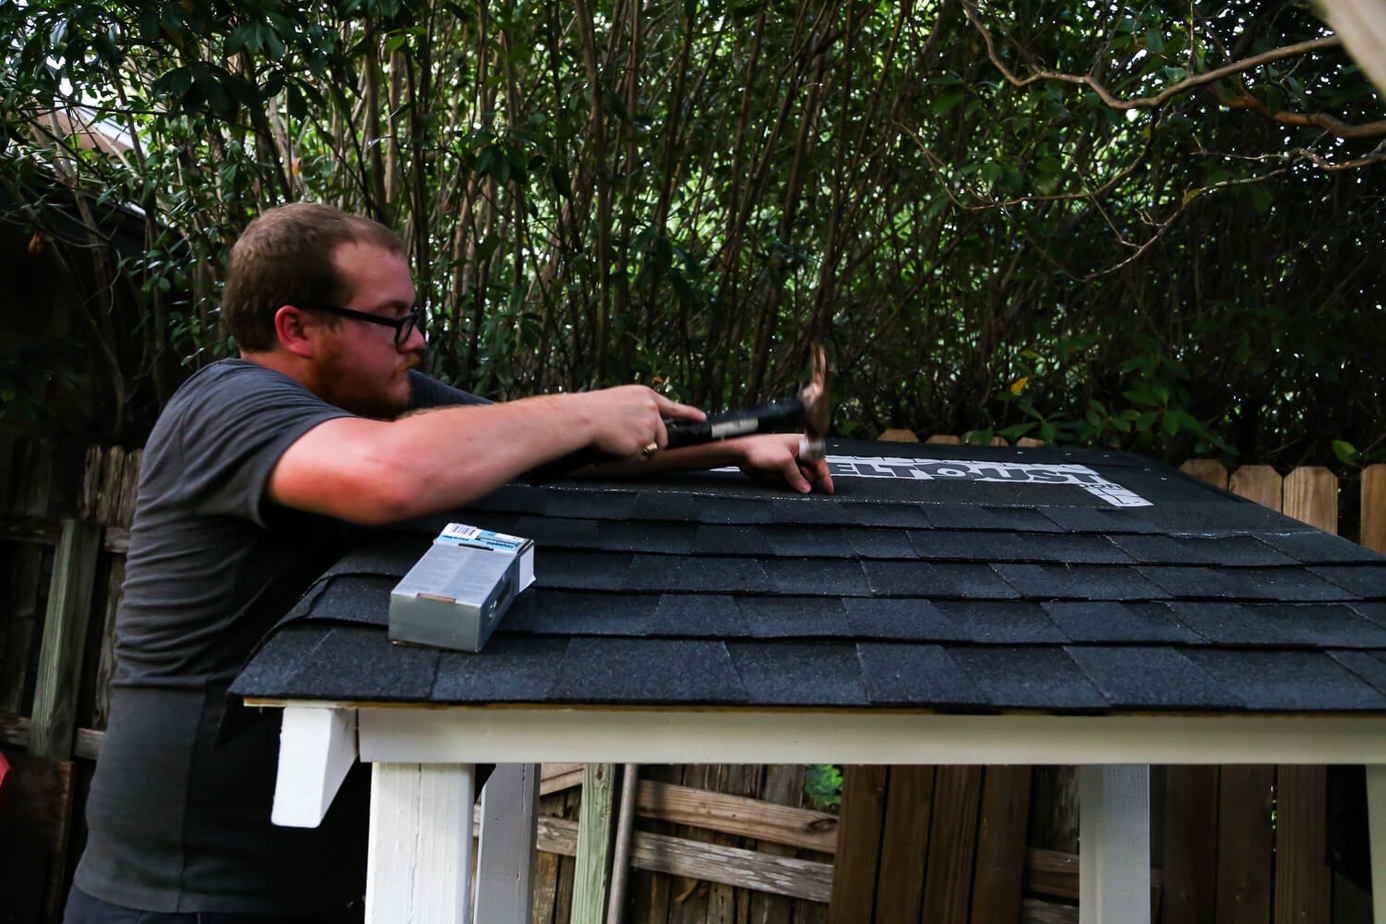 DIY installing shingles on a playhouse roof